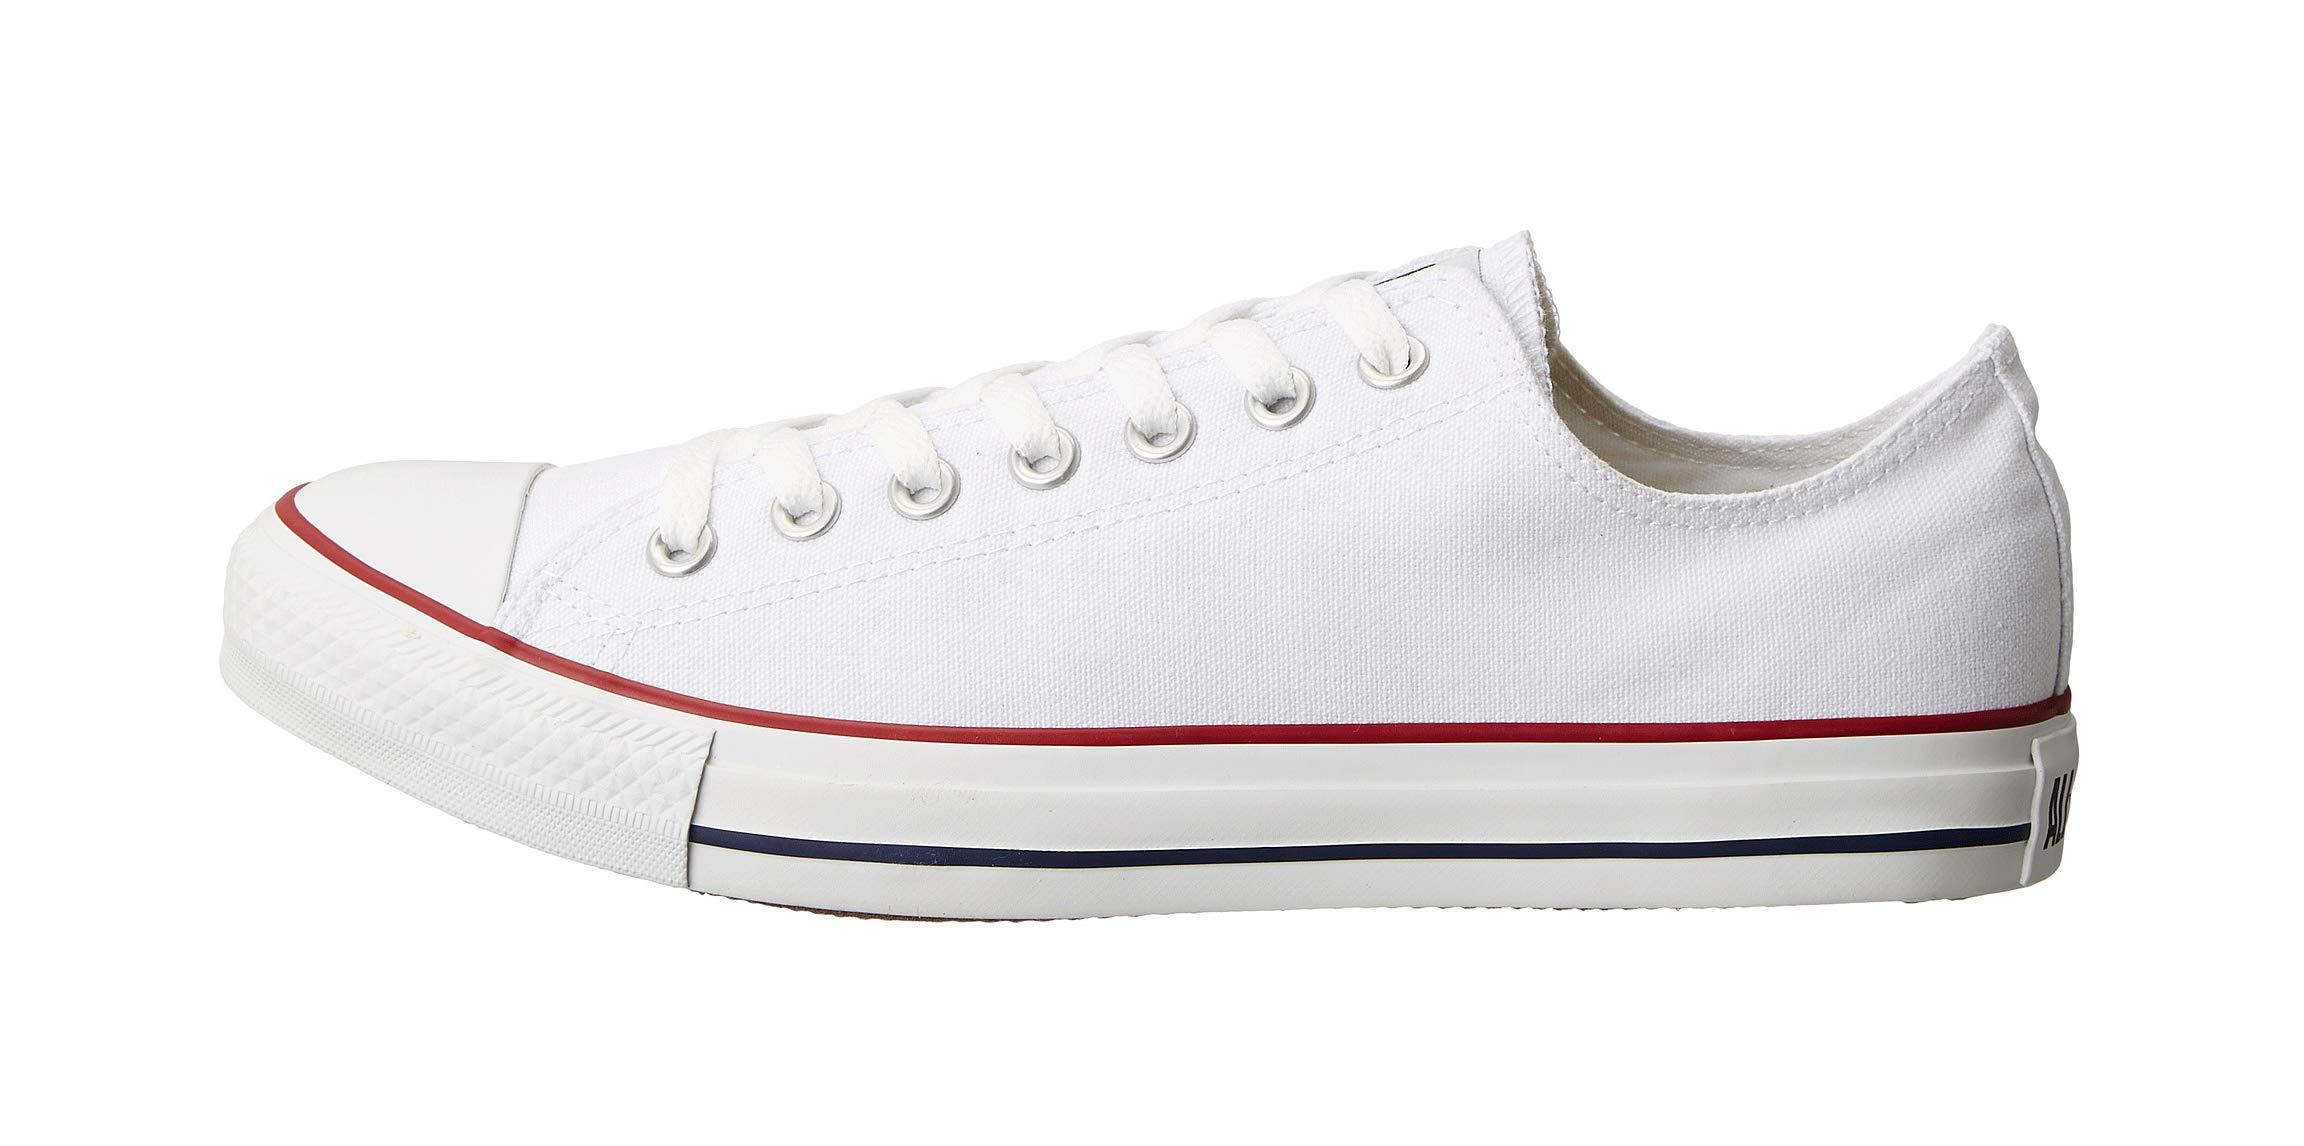 d72f83b1145b Converse Unisex Classic Chuck Taylor All Star Low Top Sneakers (7.5 B(M) US  Women   5.5 D(M) US Men